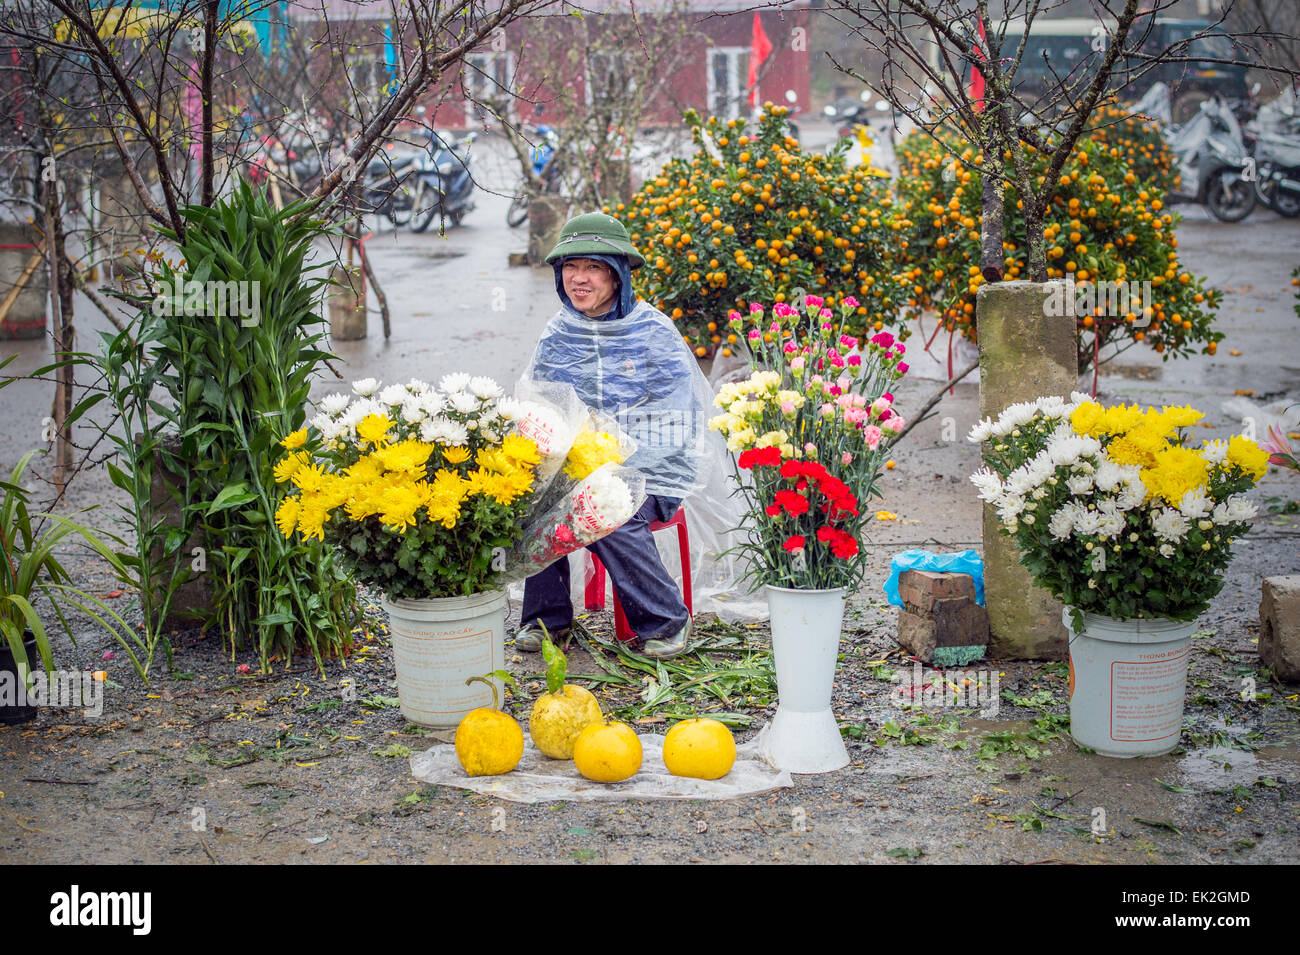 Vietnamese man selling flowers on a rainy day at the market in Sapa. - Stock Image